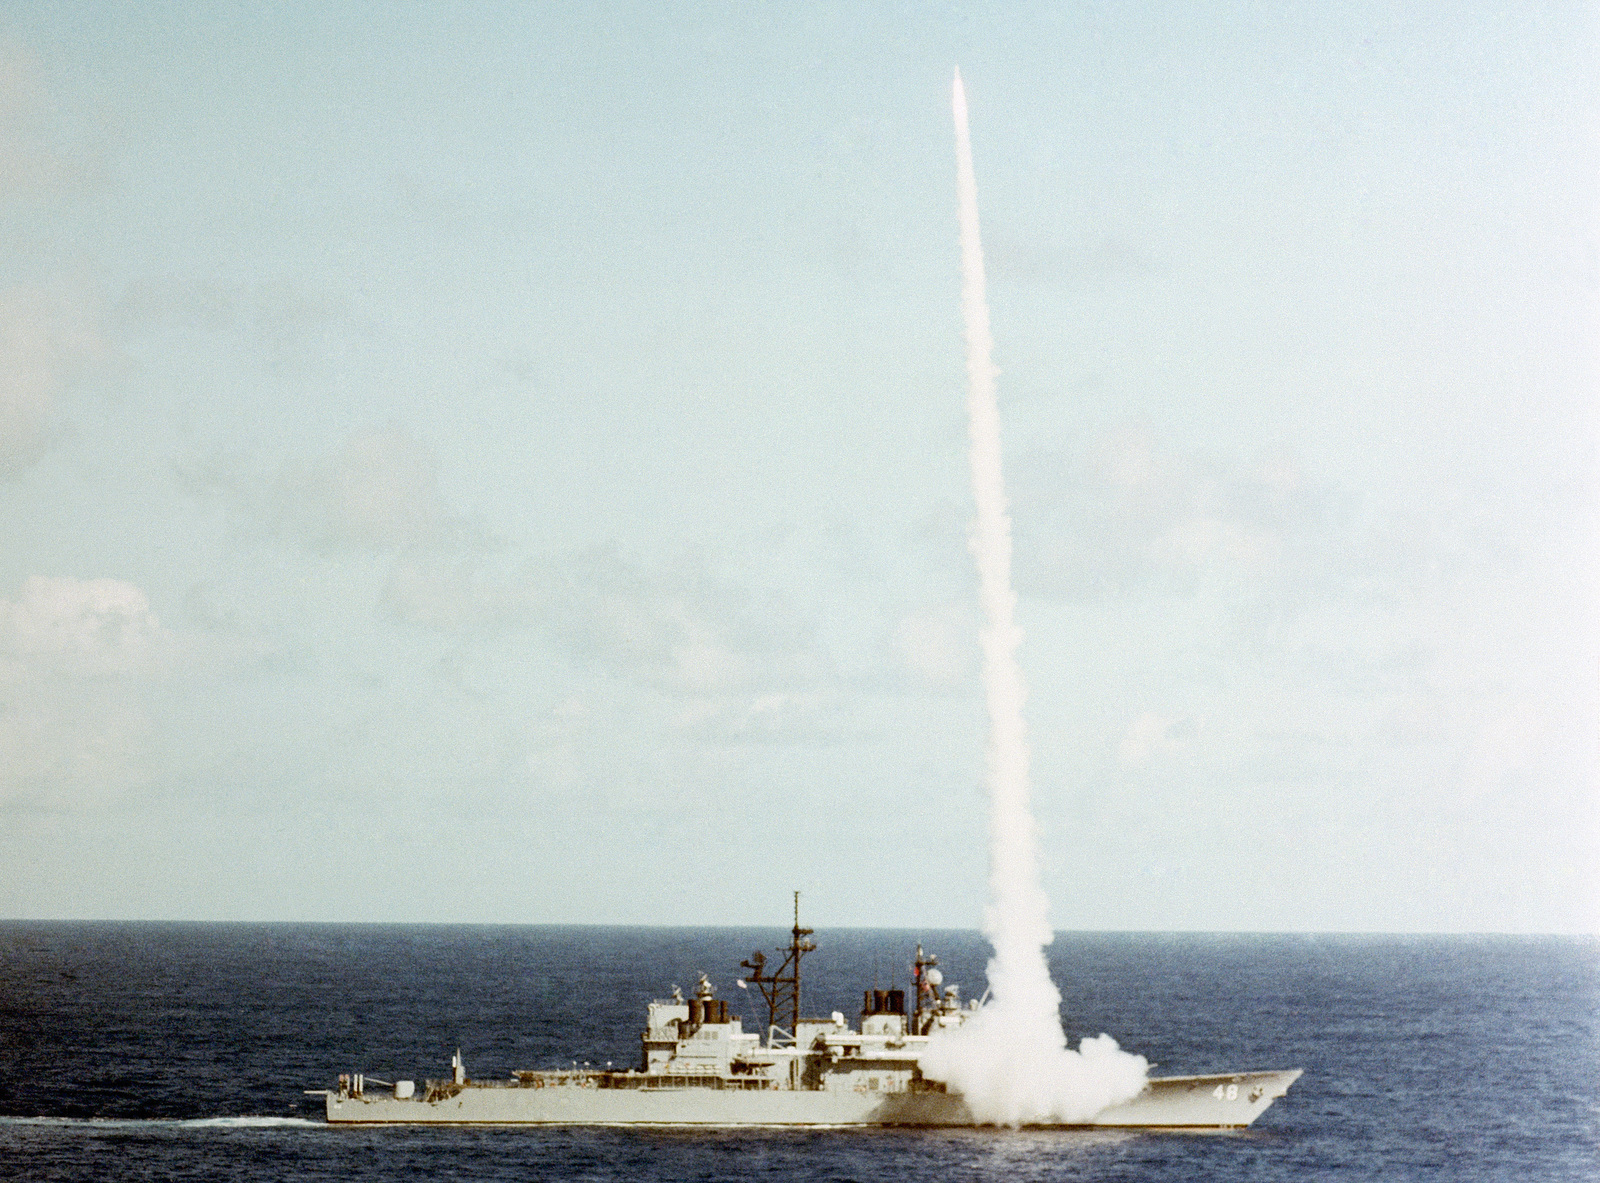 An aerial starboard beam view of the Aegis guided missile cruiser USS YORKTOWN (CG 48) firing an RIM-66 Standard (SM-2) medium range guided missile